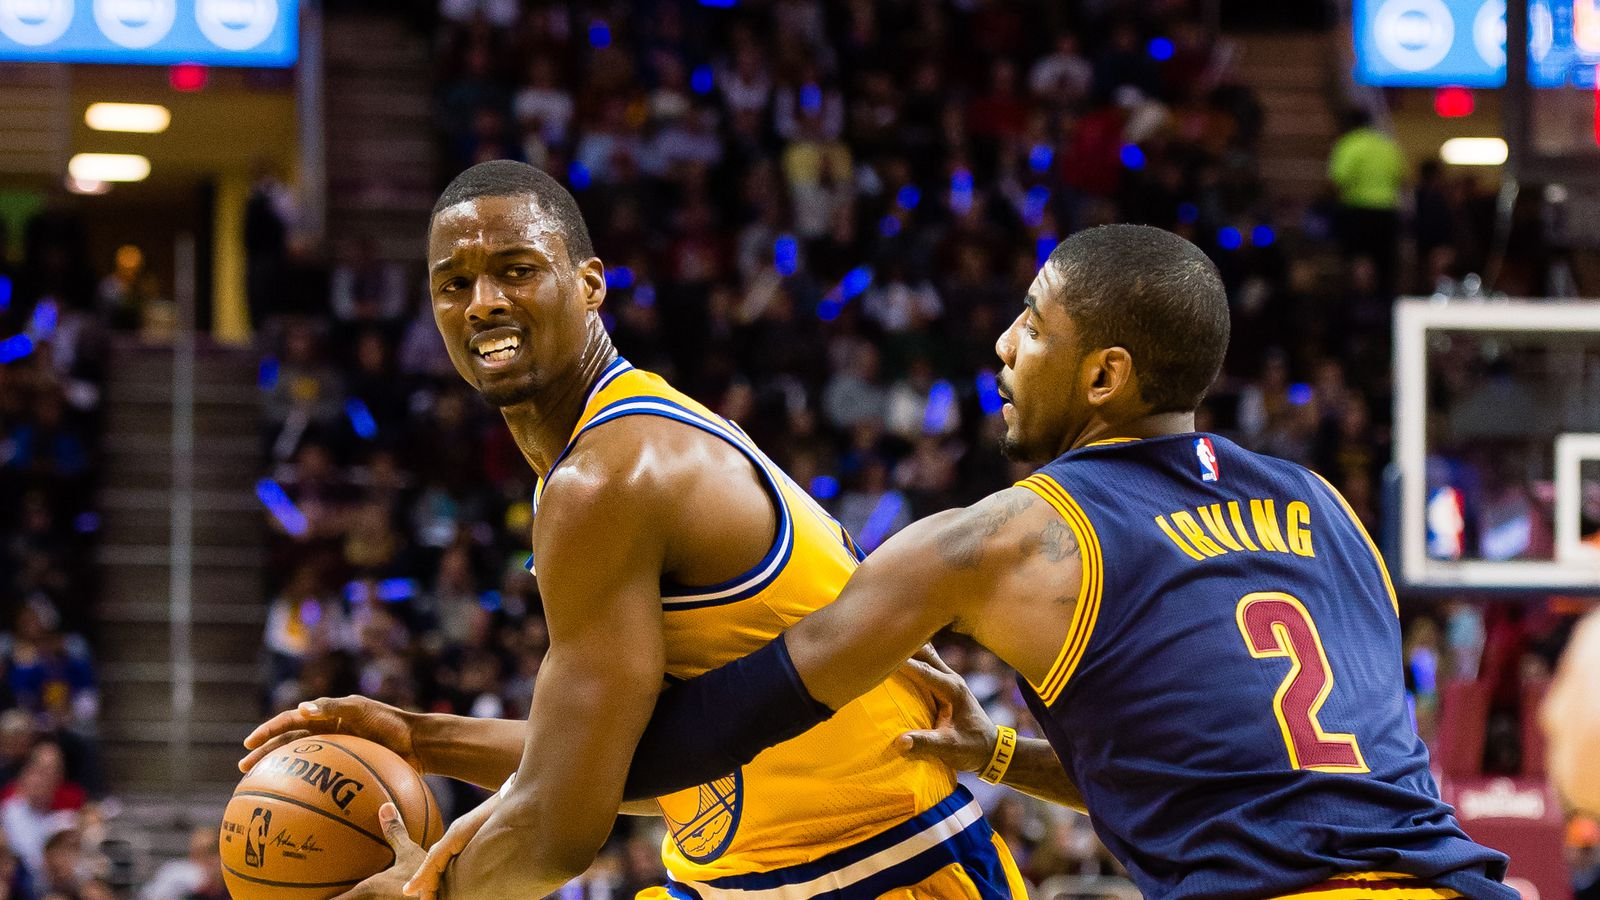 NBA Finals Q & A with Bram Kincheloe of Golden State of ...